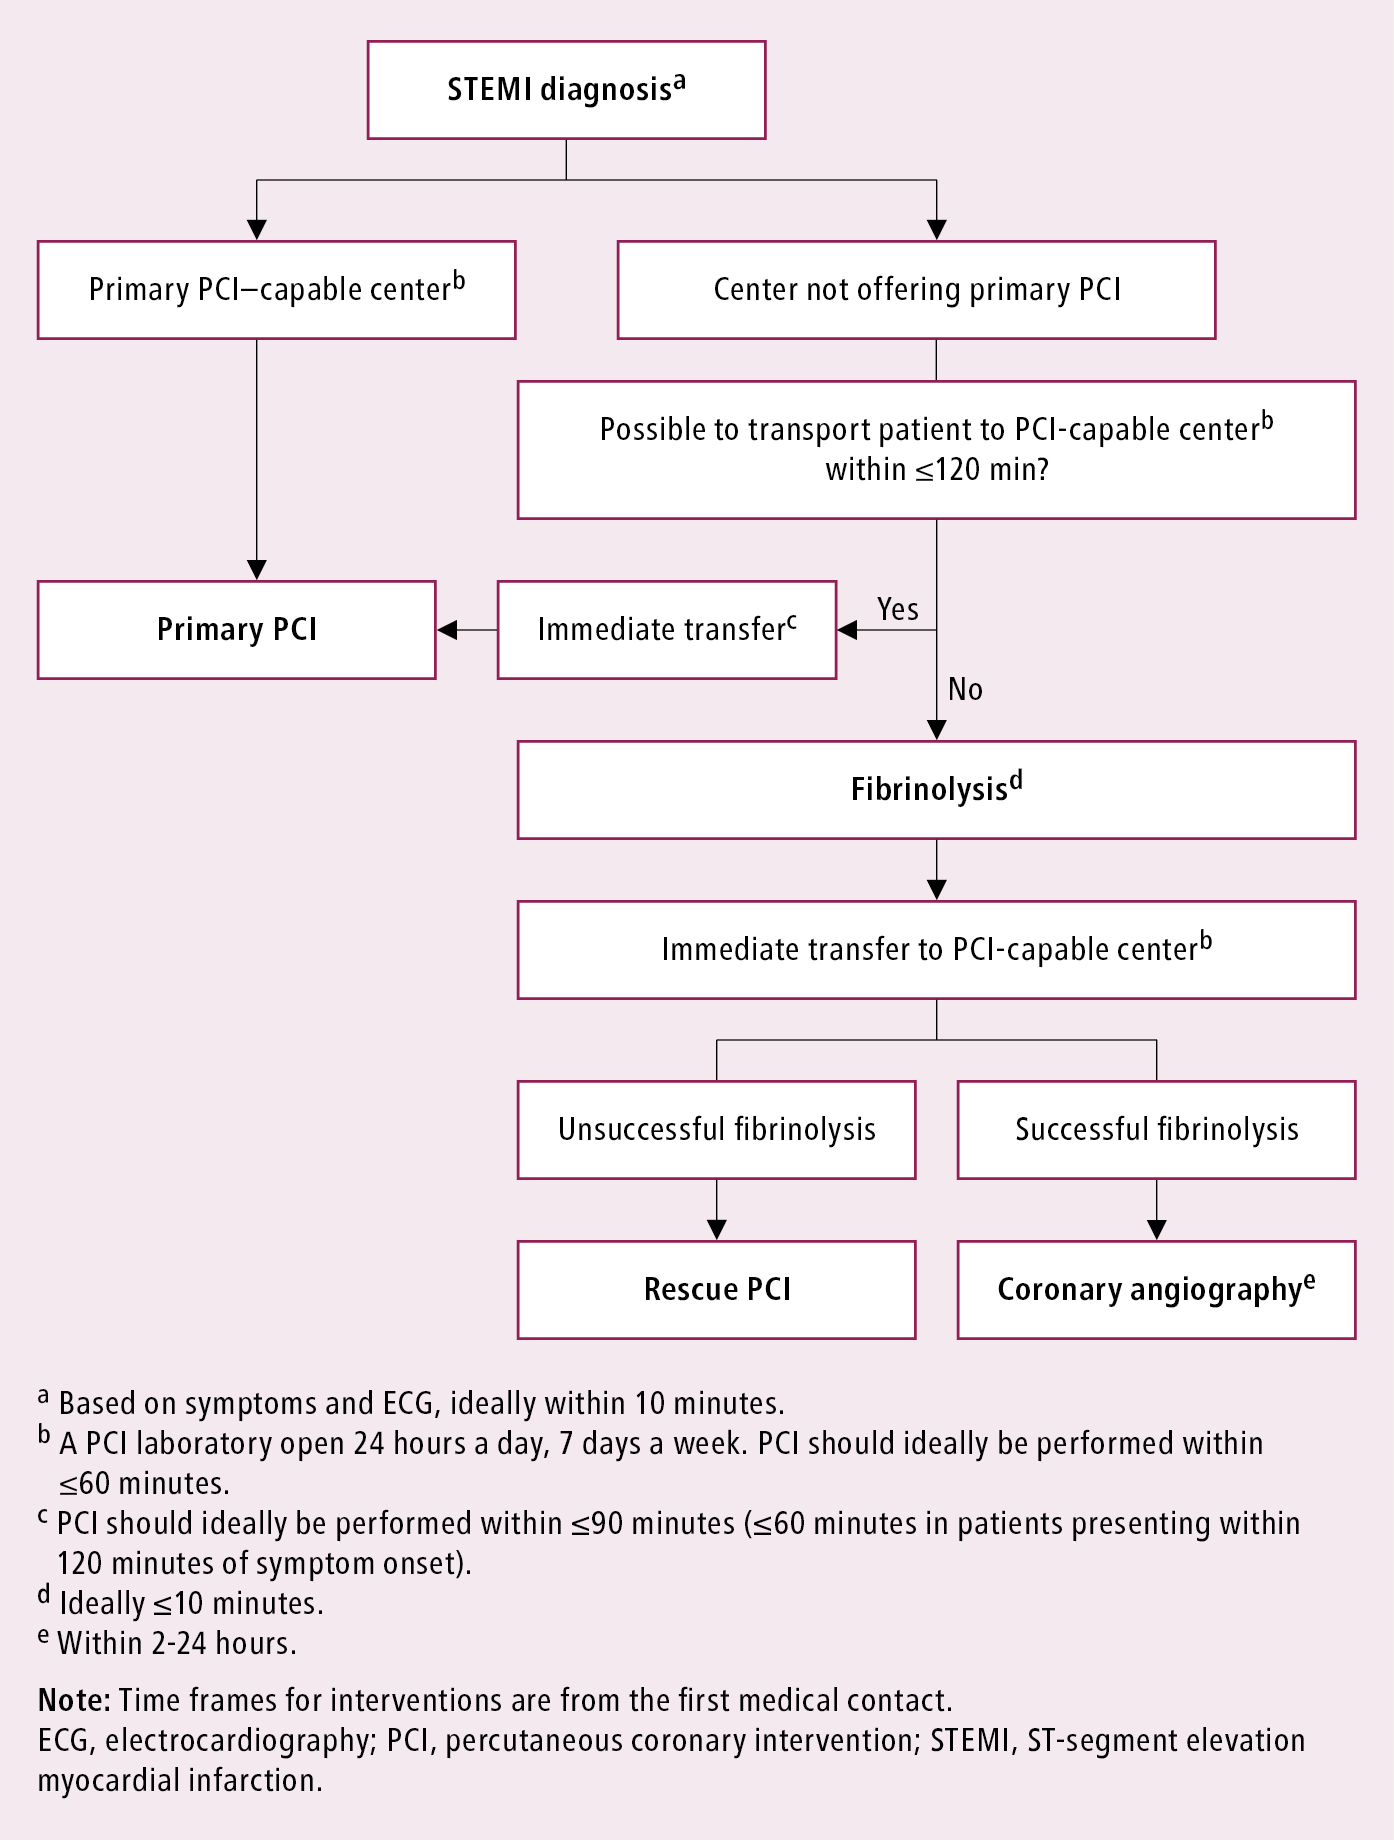 Figure 031_1_4753.  Management algorithm for patients with acute myocardial infarction with ST-segment elevation presenting within 24 hours of the first medical contact.  Based on  Eur Heart J. 2018;39(2):119-177  and  Eur Heart J. 2019;40(2):87-165 .